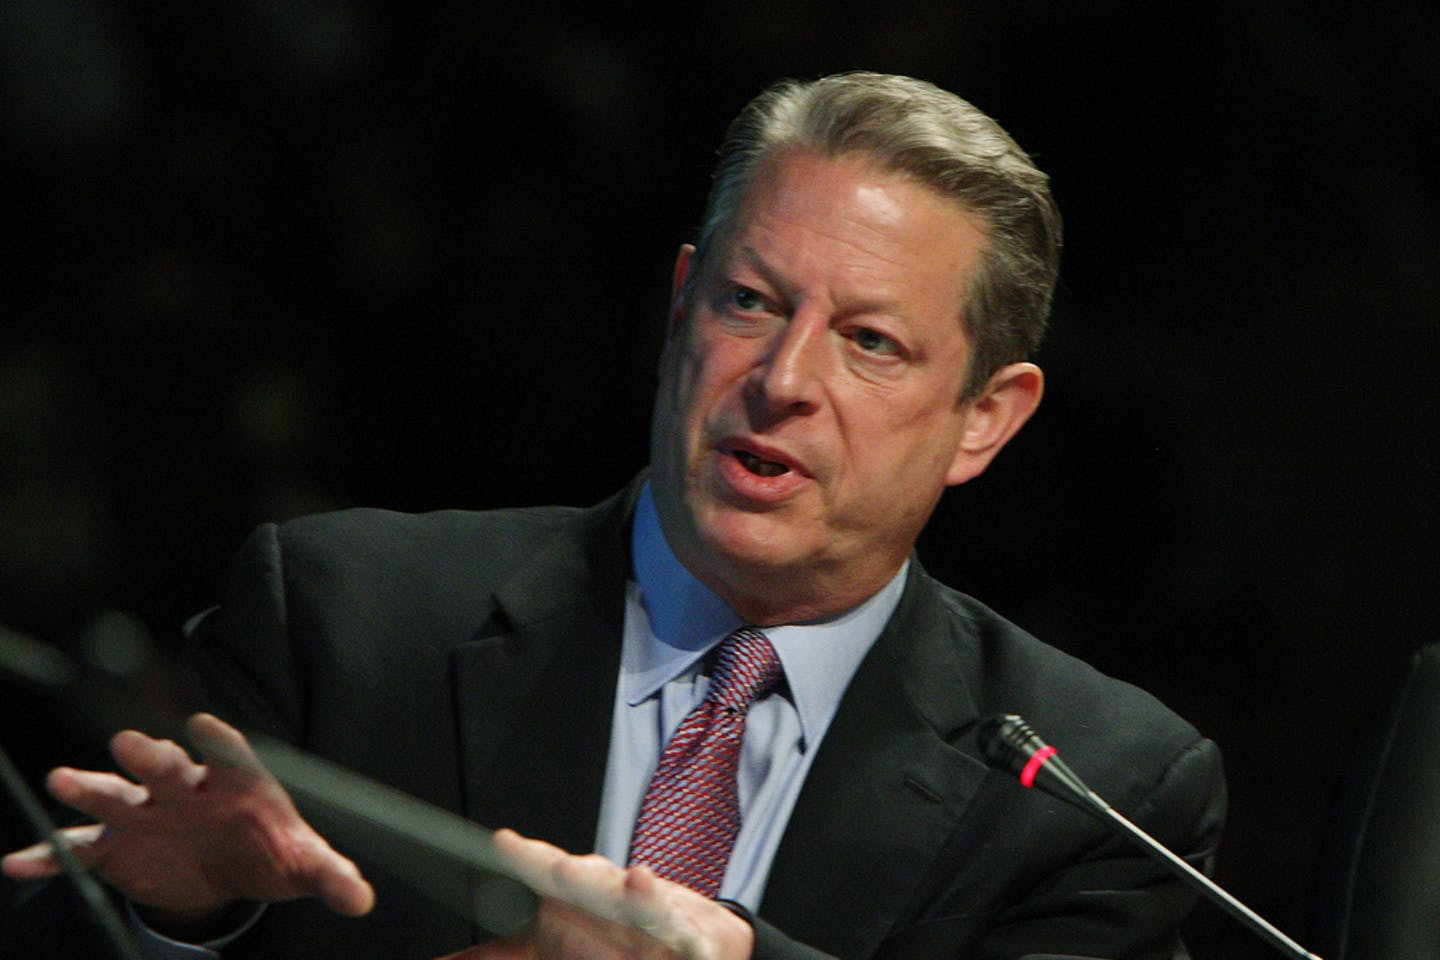 Former US Vice President Al Gore returns to the big screen in An Inconvenient Sequel: Truth to Power